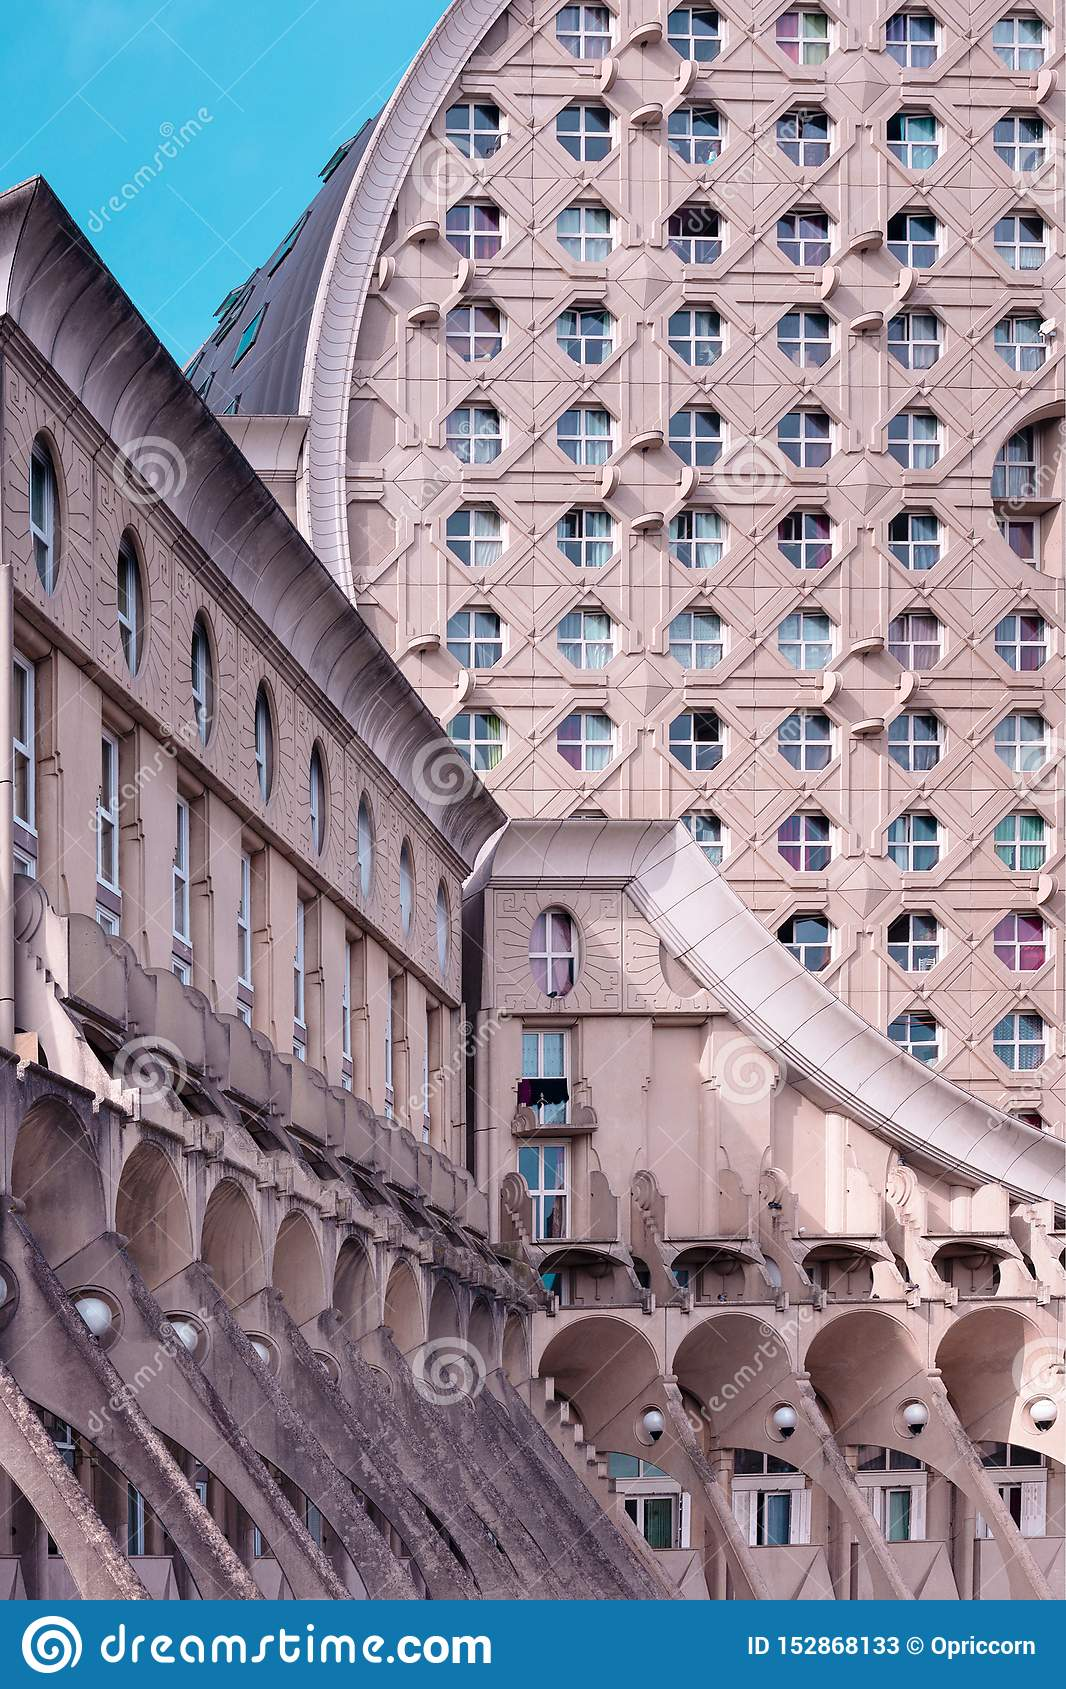 Noisy Le Grand Architecture place pablo picasso, noisy-le-grand, france editorial stock